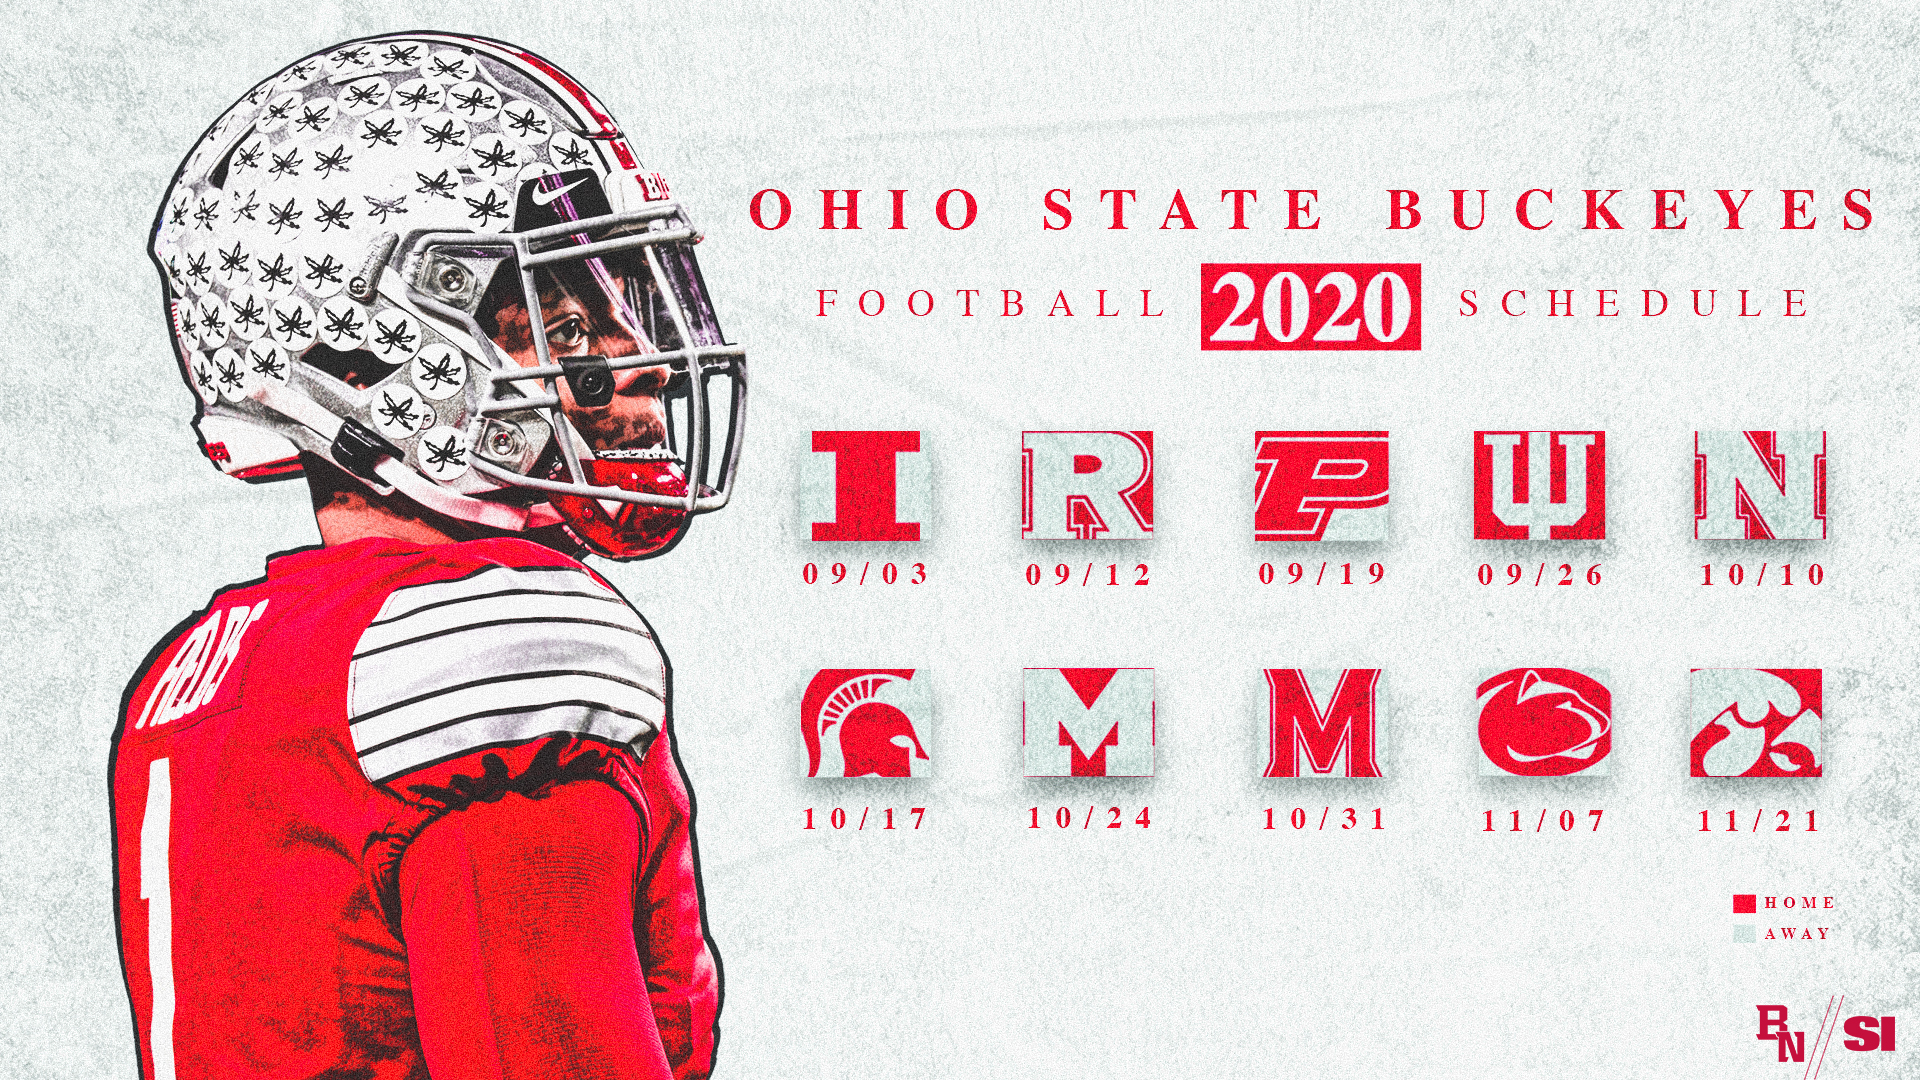 Big Ten Announces 2020 Schedule Including 10 Games For Ohio State Football